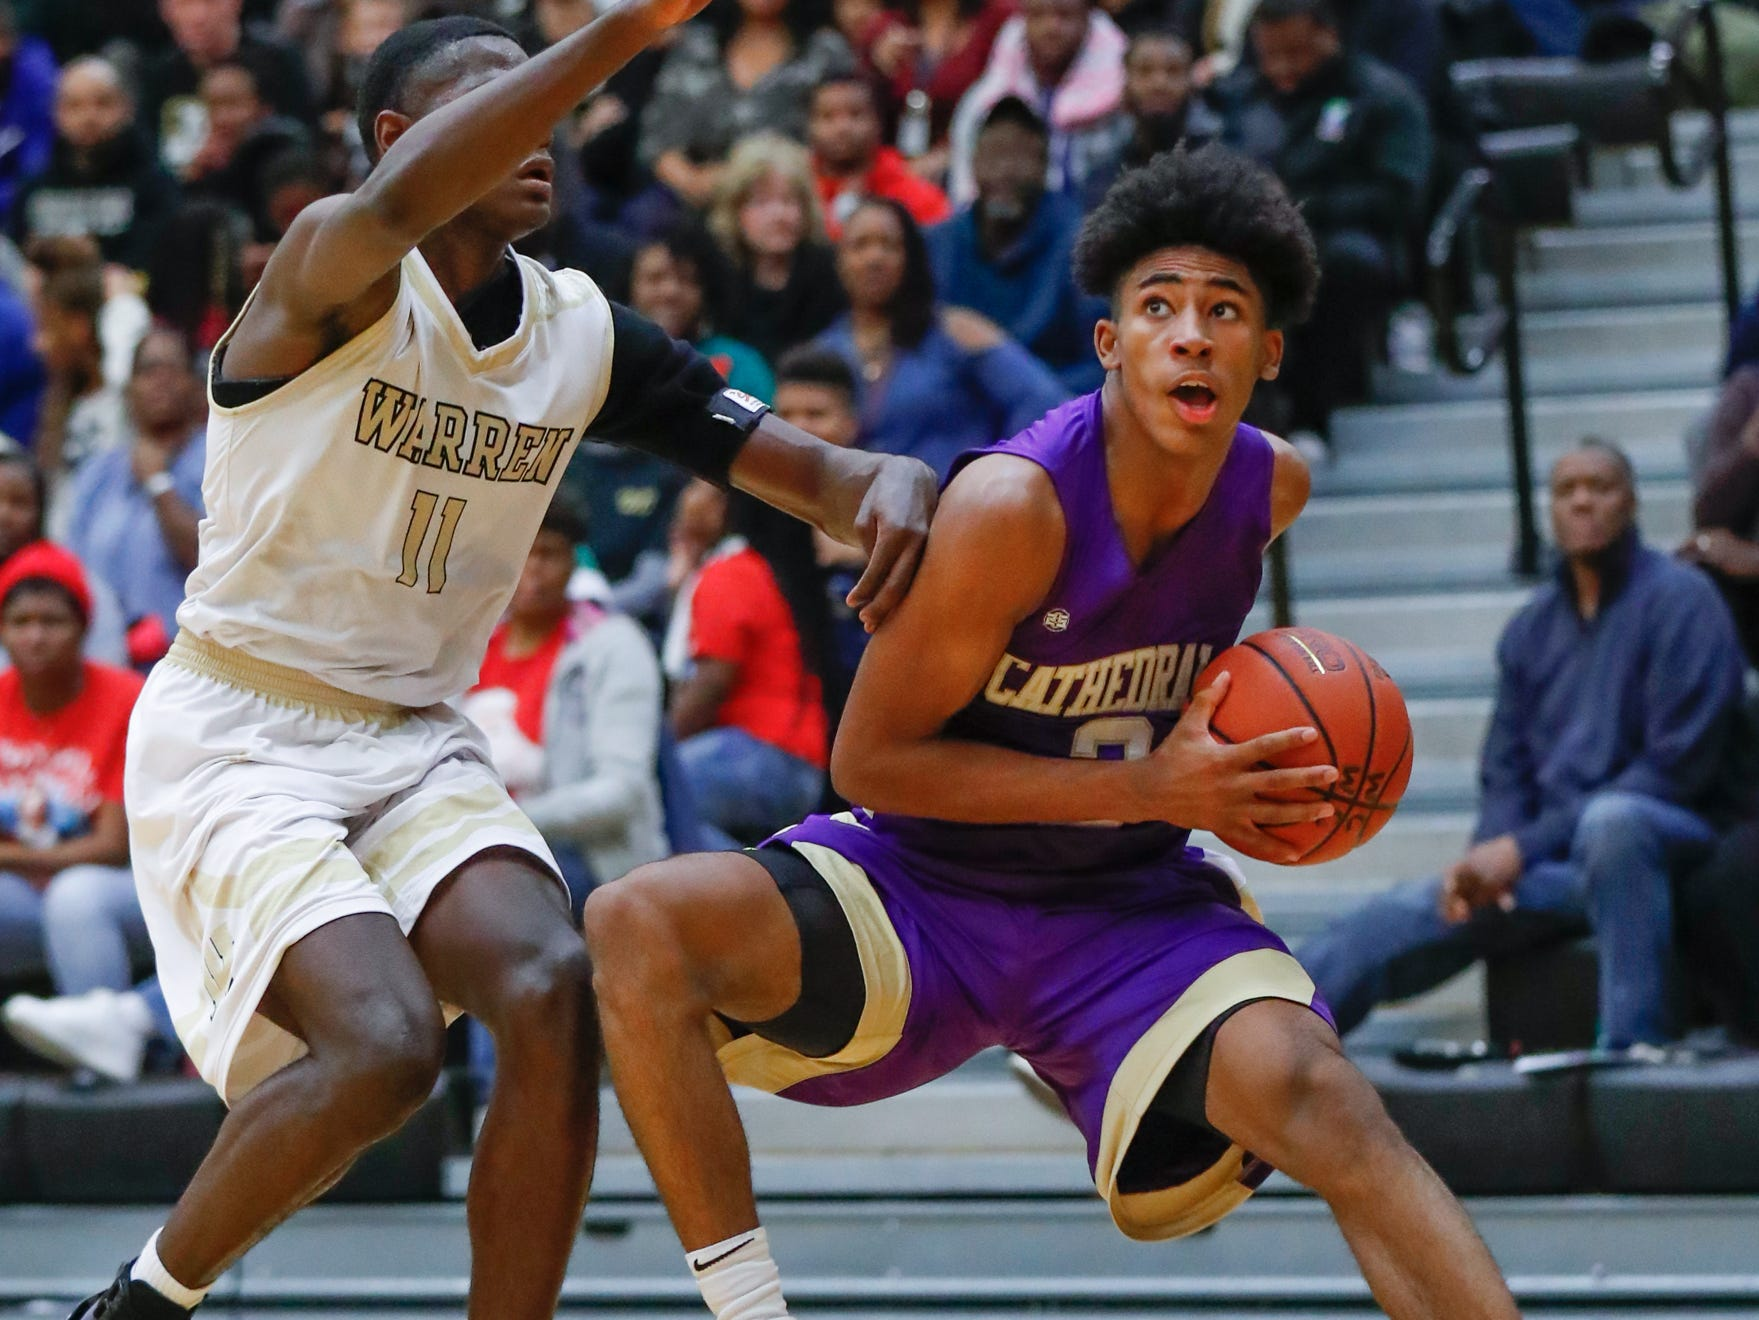 Cathedral High School's guard Armaan Franklin (2) weaves past Warren Central High School's forward Jesse Bingham (11), during a varsity boys basketball game between Cathedral High School and Warren Central High School at Warren Central on Friday, Dec. 7, 2018.